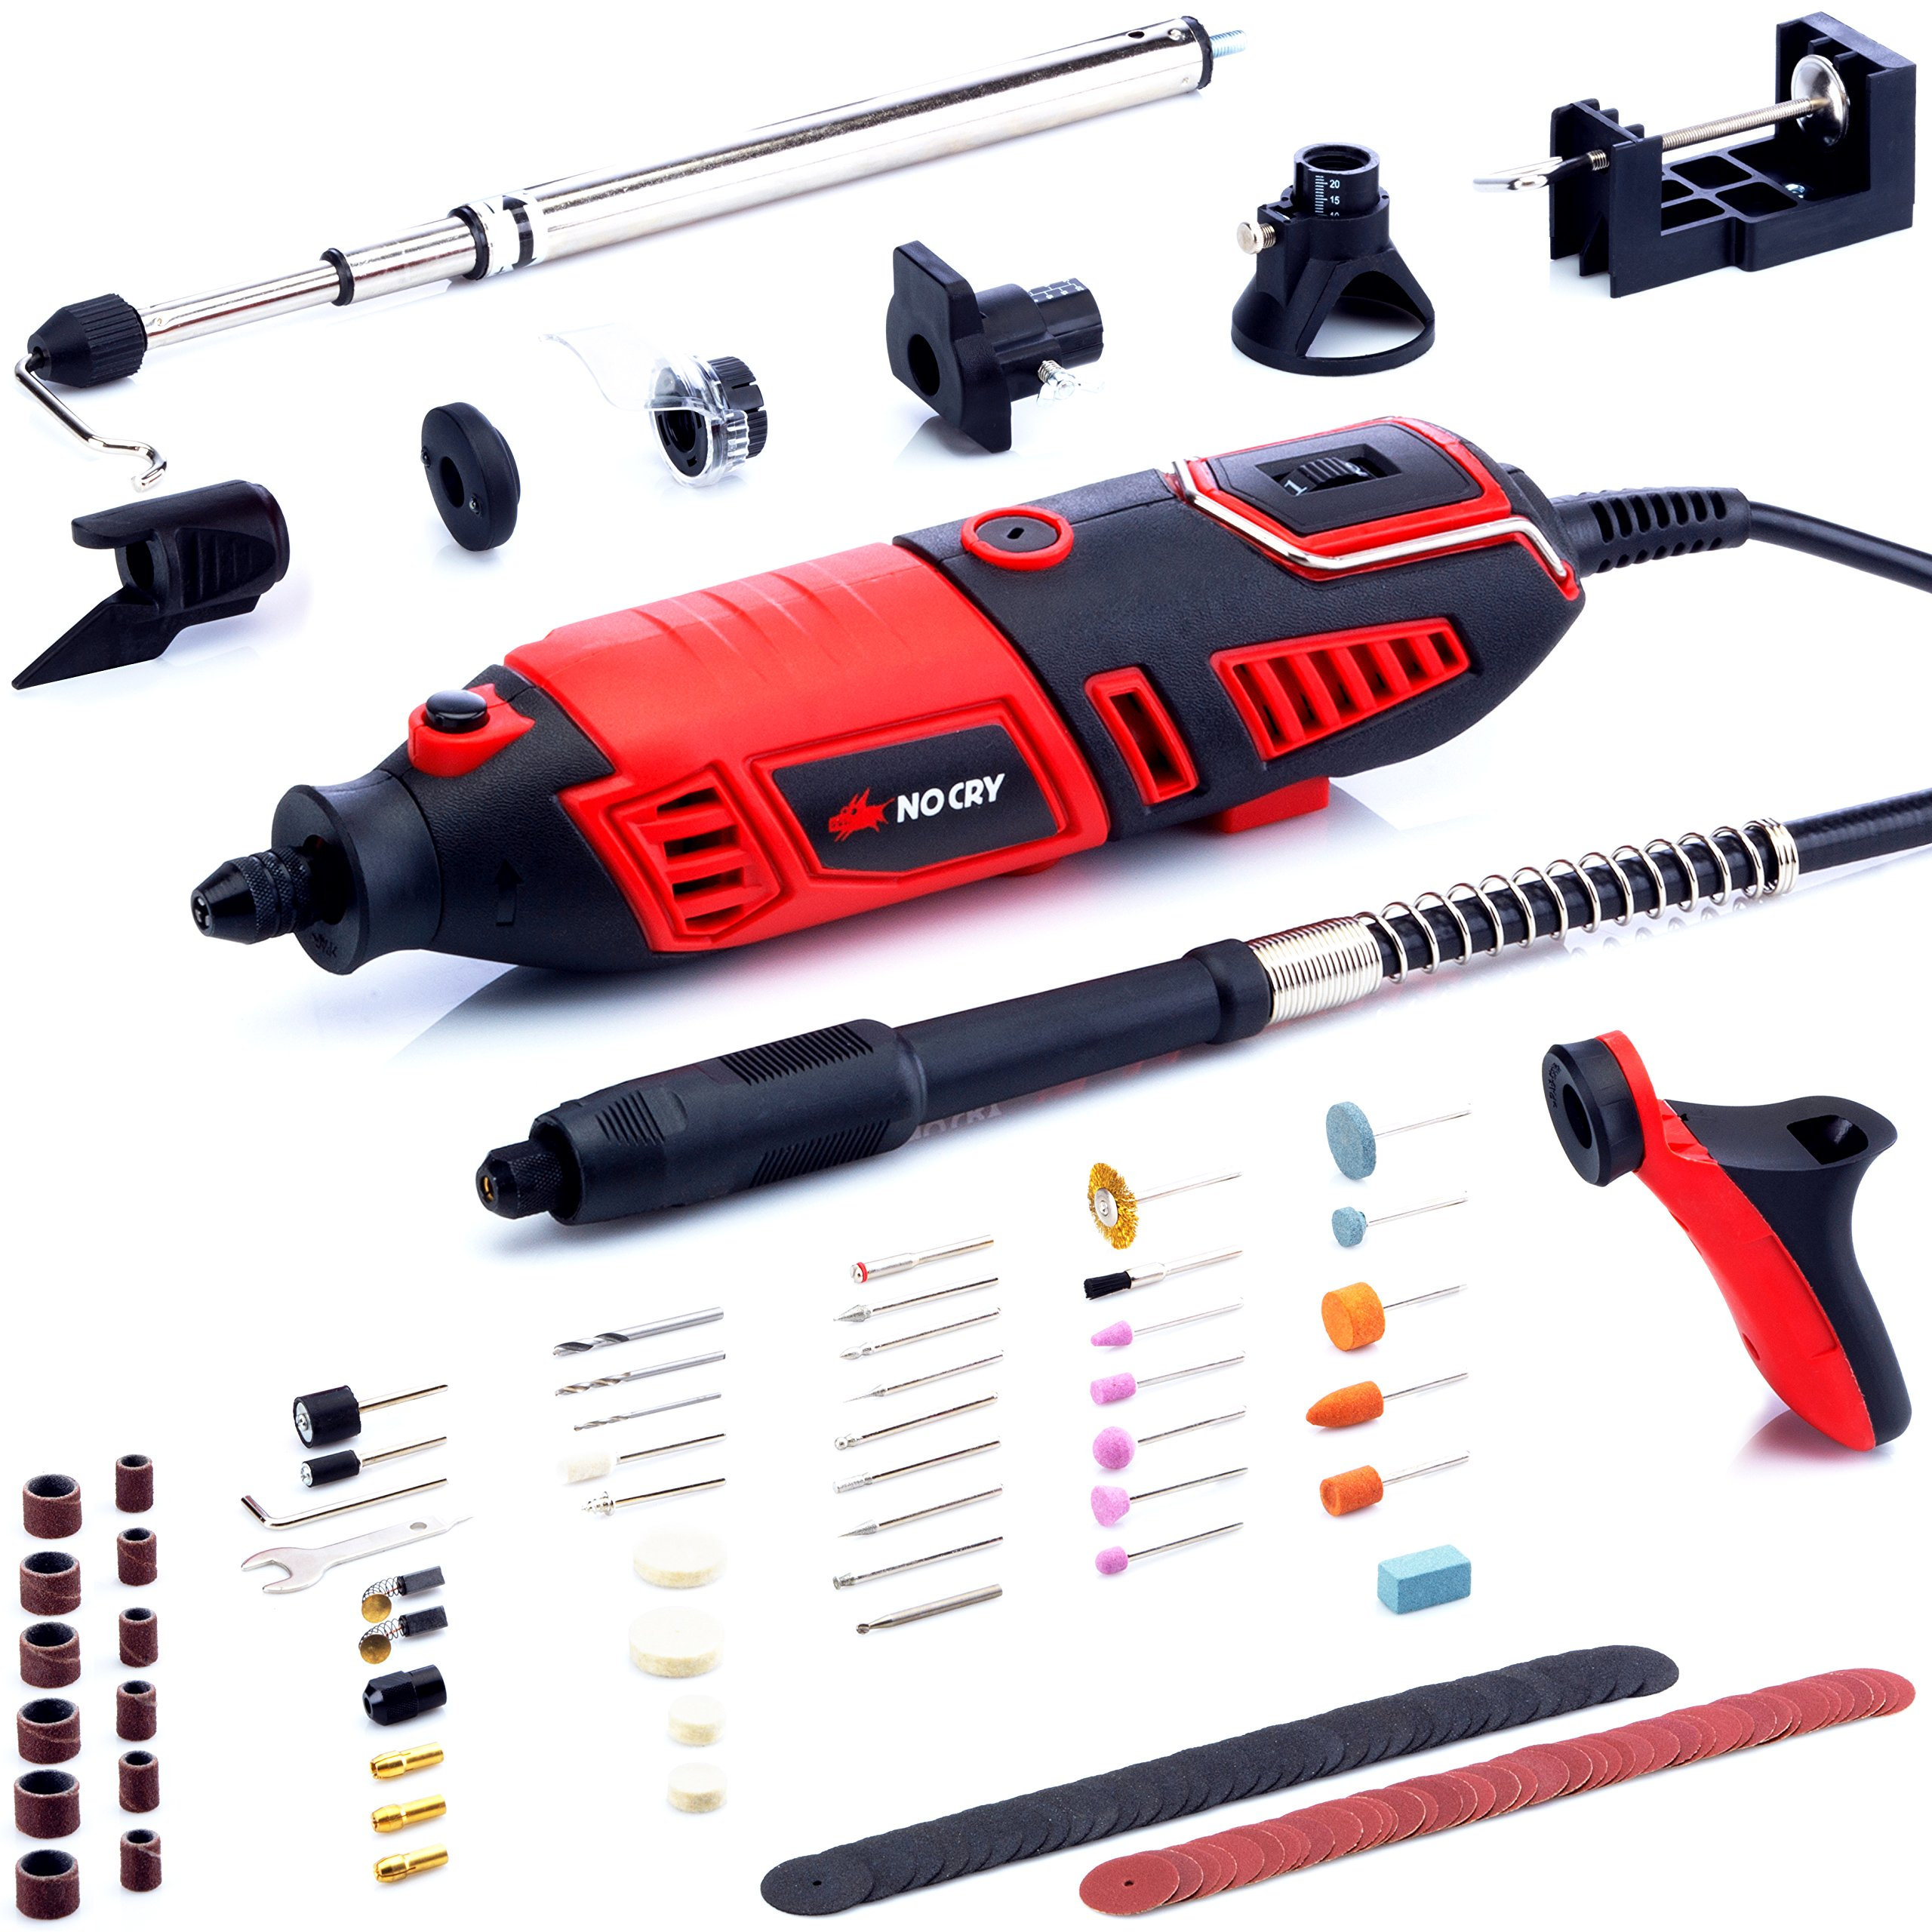 NoCry 10/125 Professional Rotary Tool Kit with Heavy Duty 170W/1.4A Electric Motor, Universal 3-Jaw Chuck, 10 Attachments & 125 Accessories Included by NoCry (Image #1)